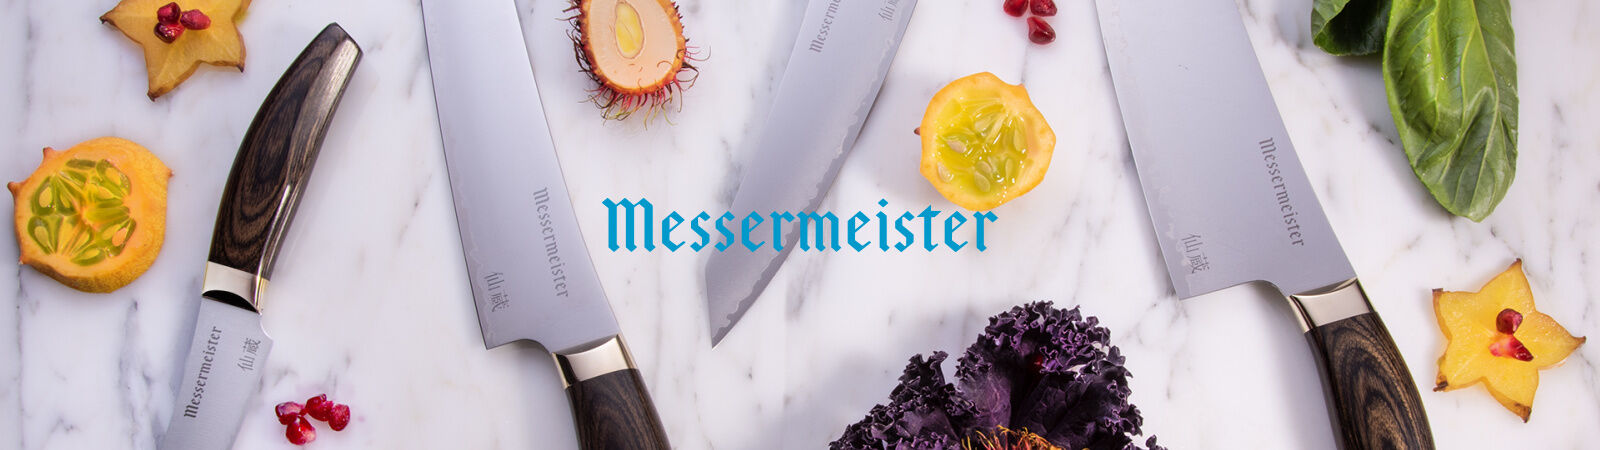 Messermeister Fine Cutlery, Chef's Knifes & Kitchen Tools